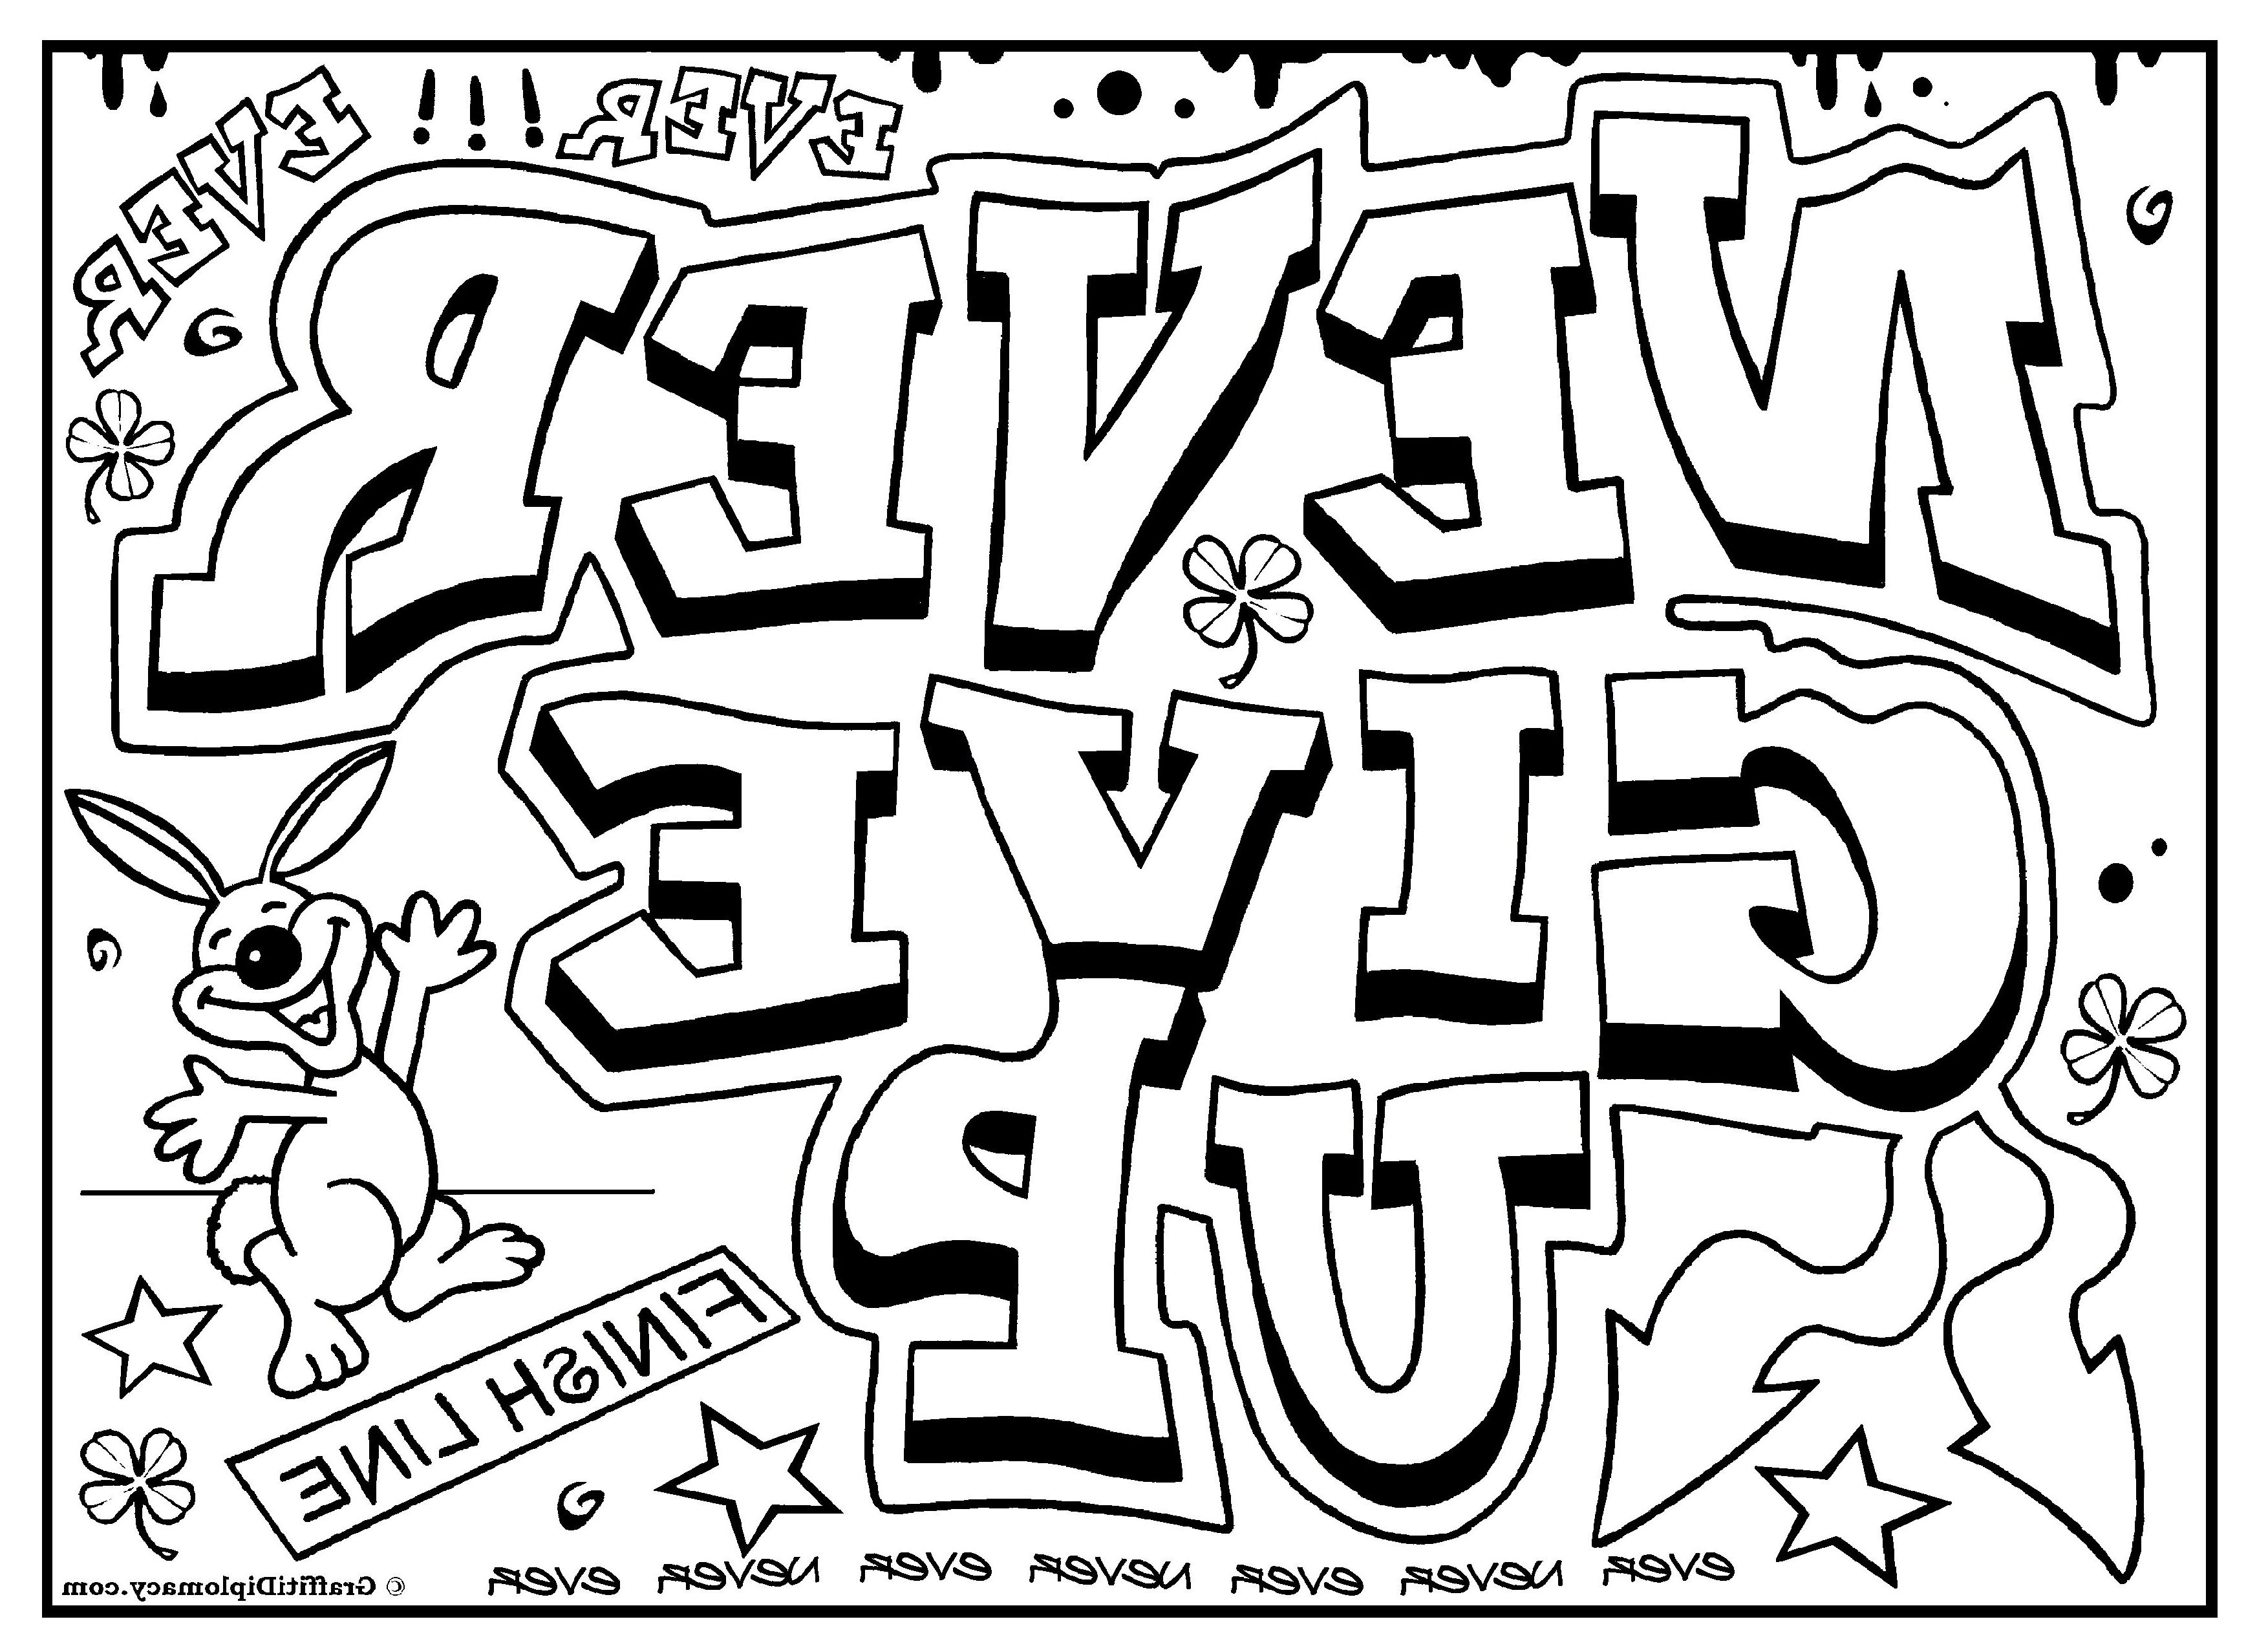 Coloring Pages For Teenagers Graffiti | Coloring pages for ...